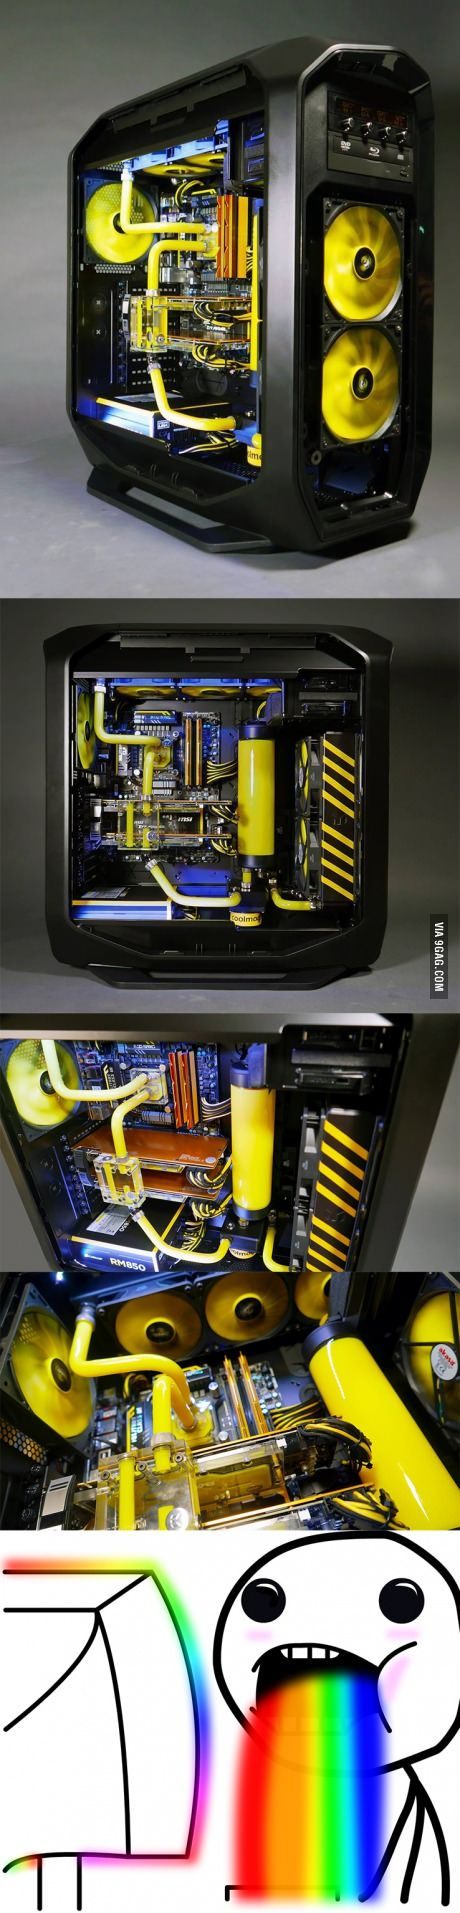 best 20 games for pc ideas on pinterest gaming desk gaming corsair just posted these pictures of their pc build